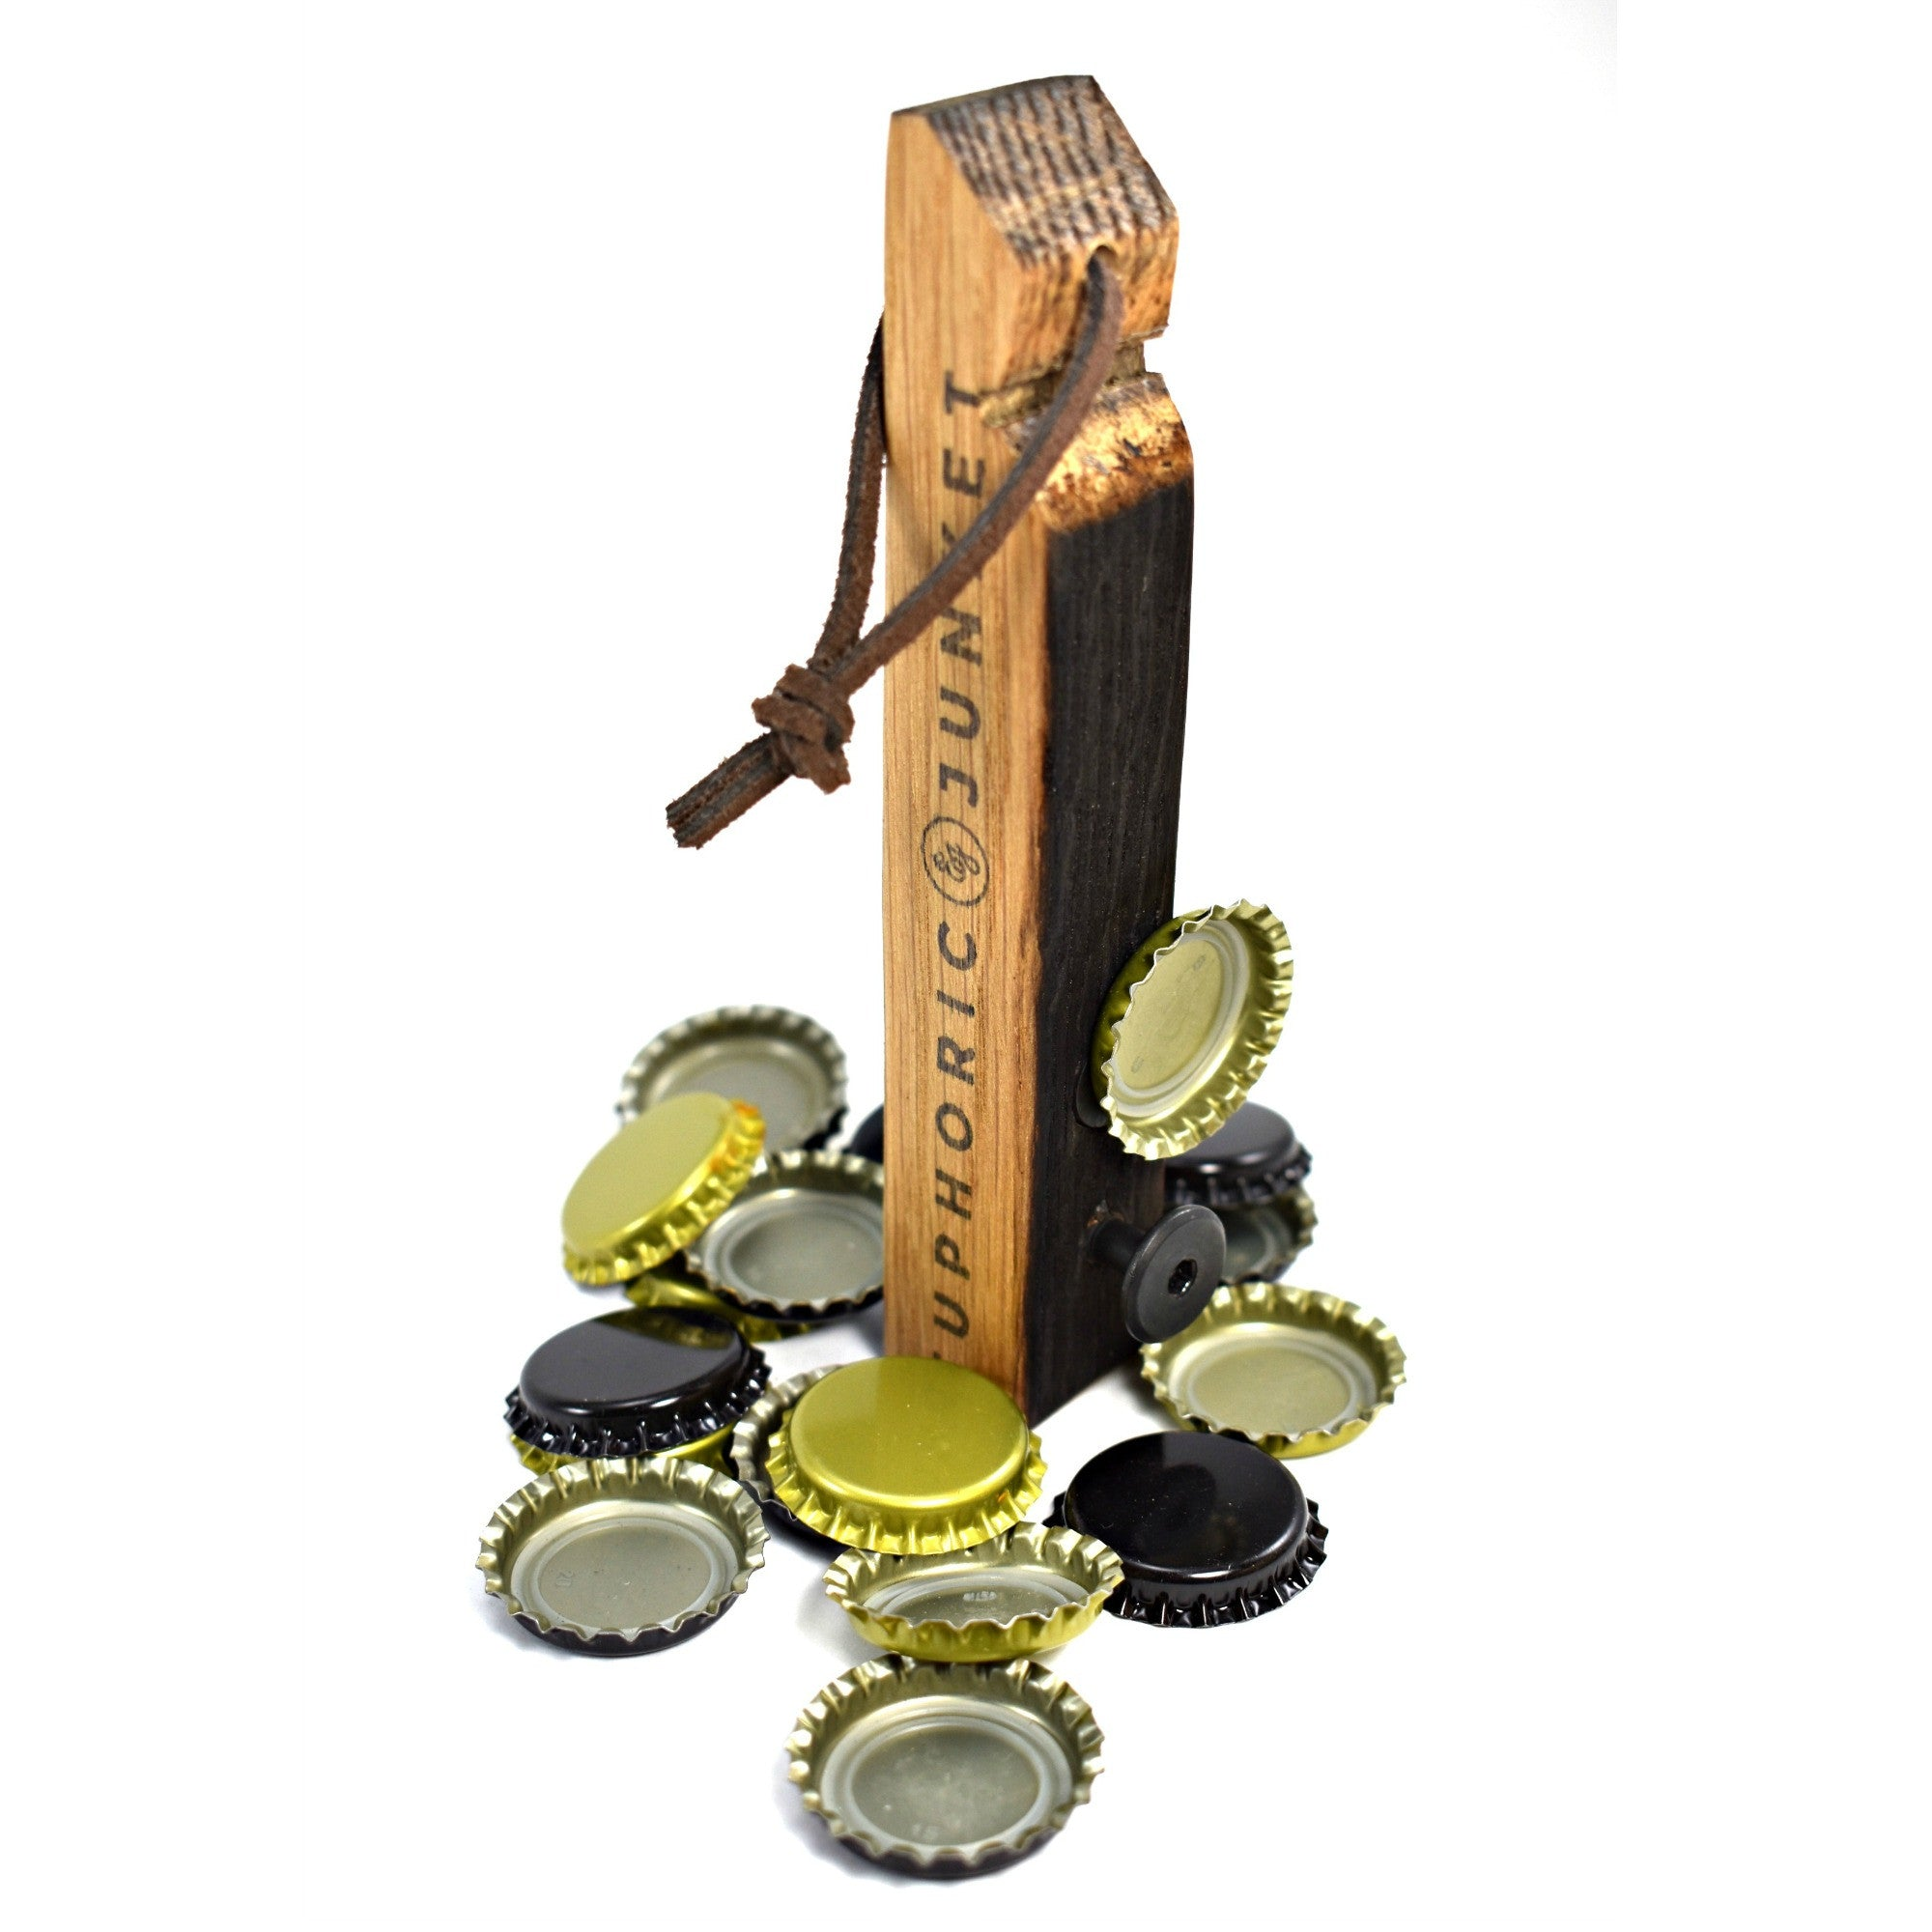 Bourbon Barrel Bottle Opener